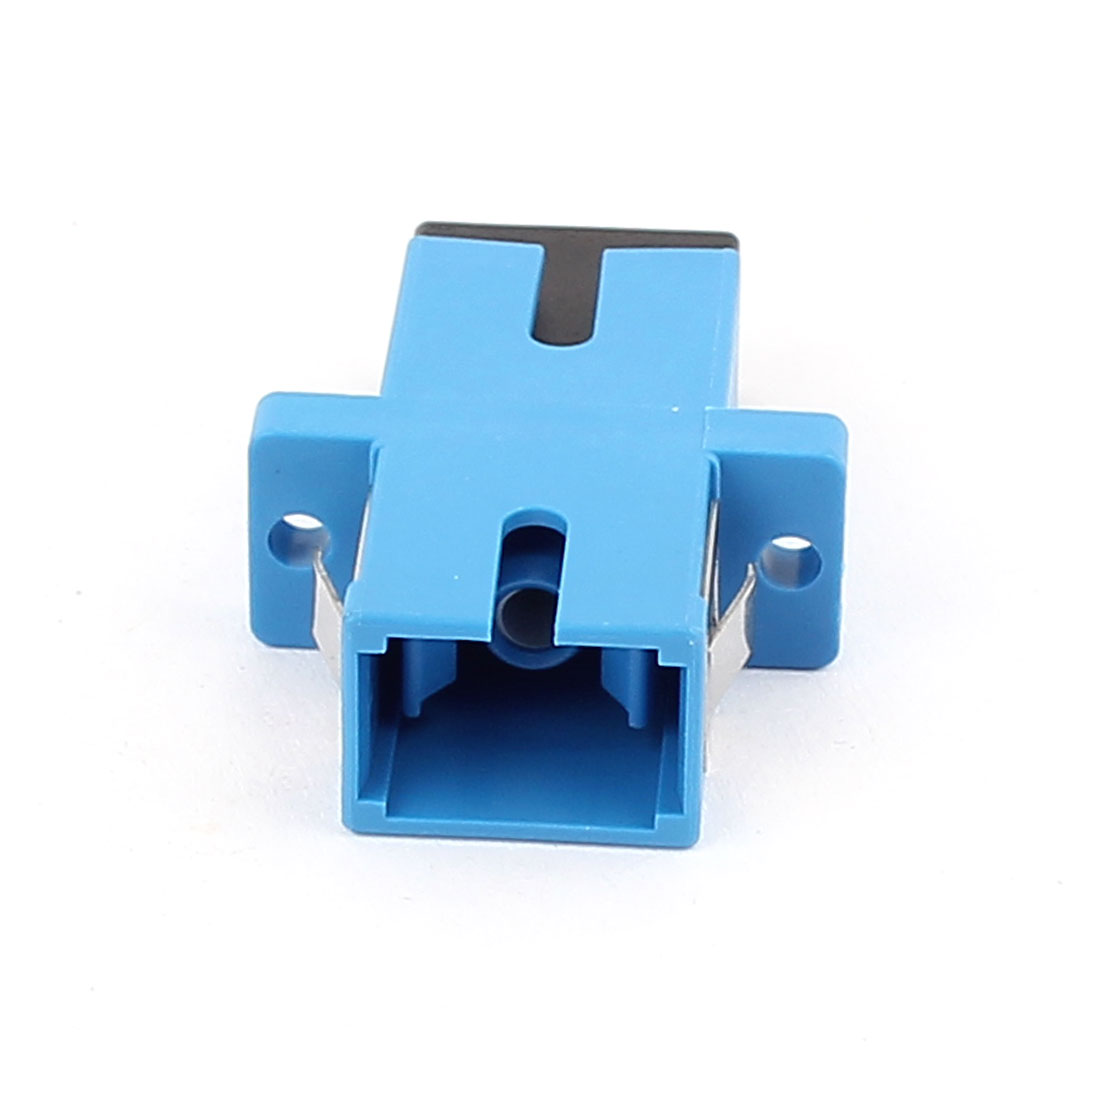 SC/SC Simplex MM SM Fiber Optical Flange Adapter Cable Connector